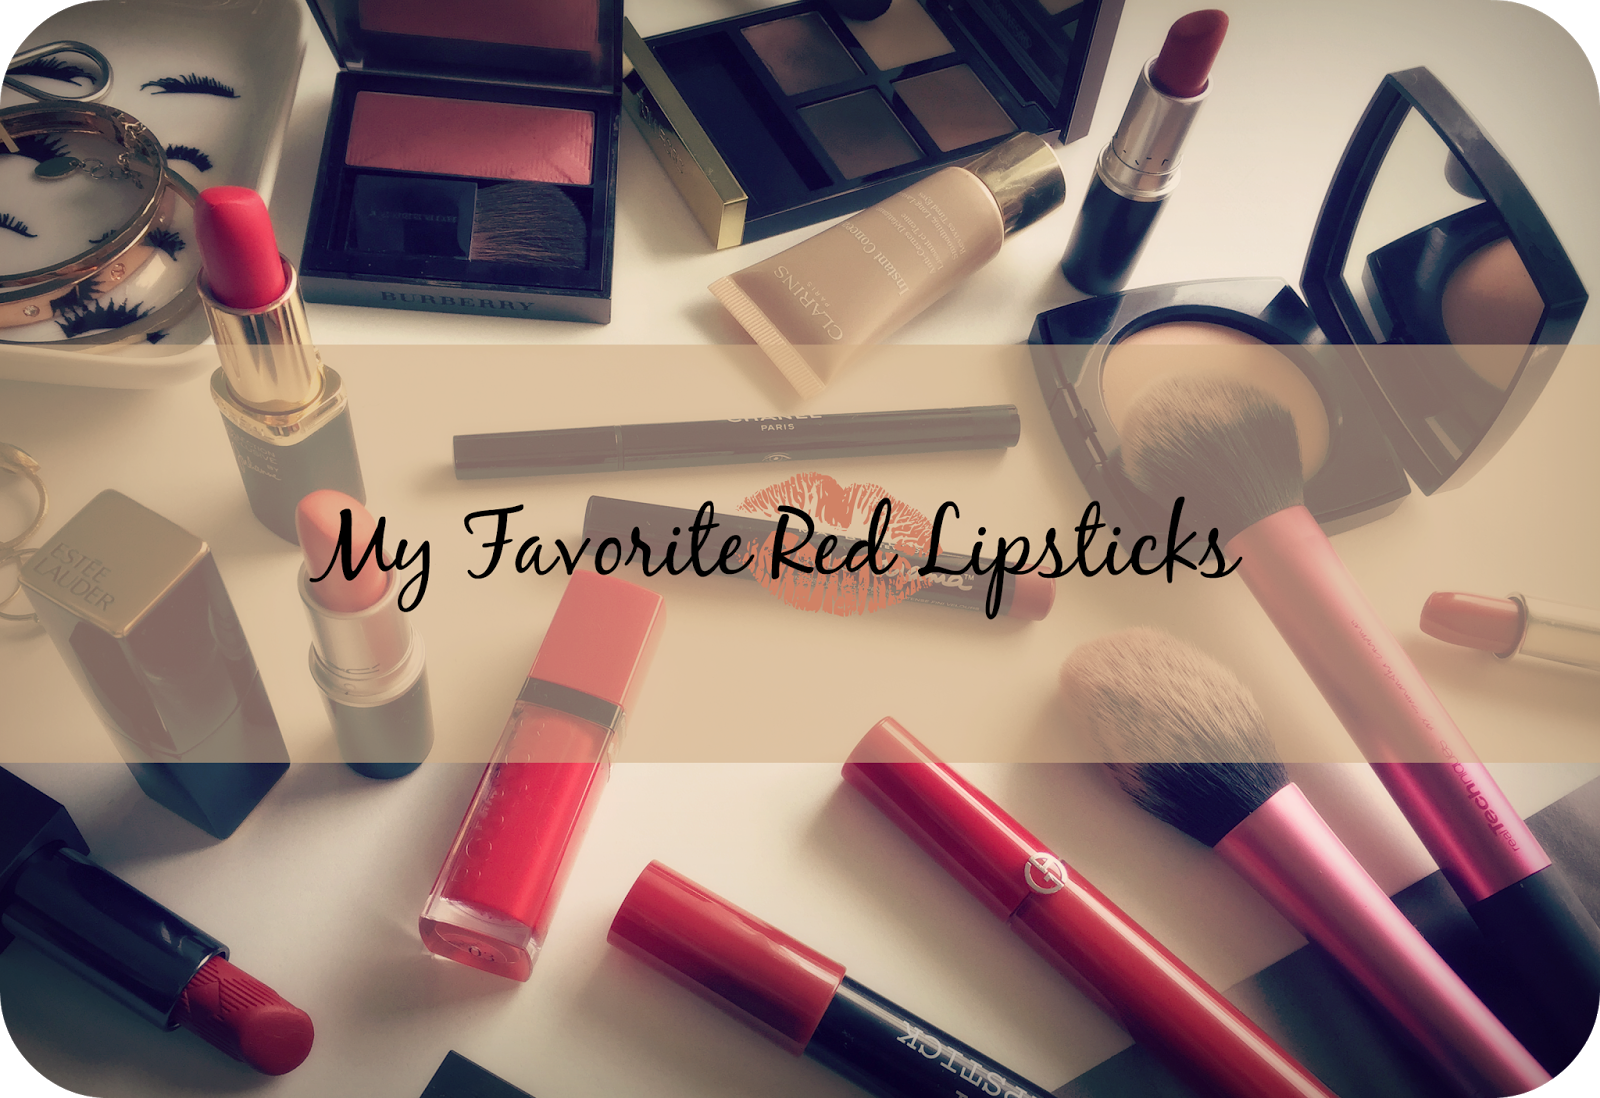 http://www.beautyincrisis.com/2015/03/my-favorite-red-lipsticks.html